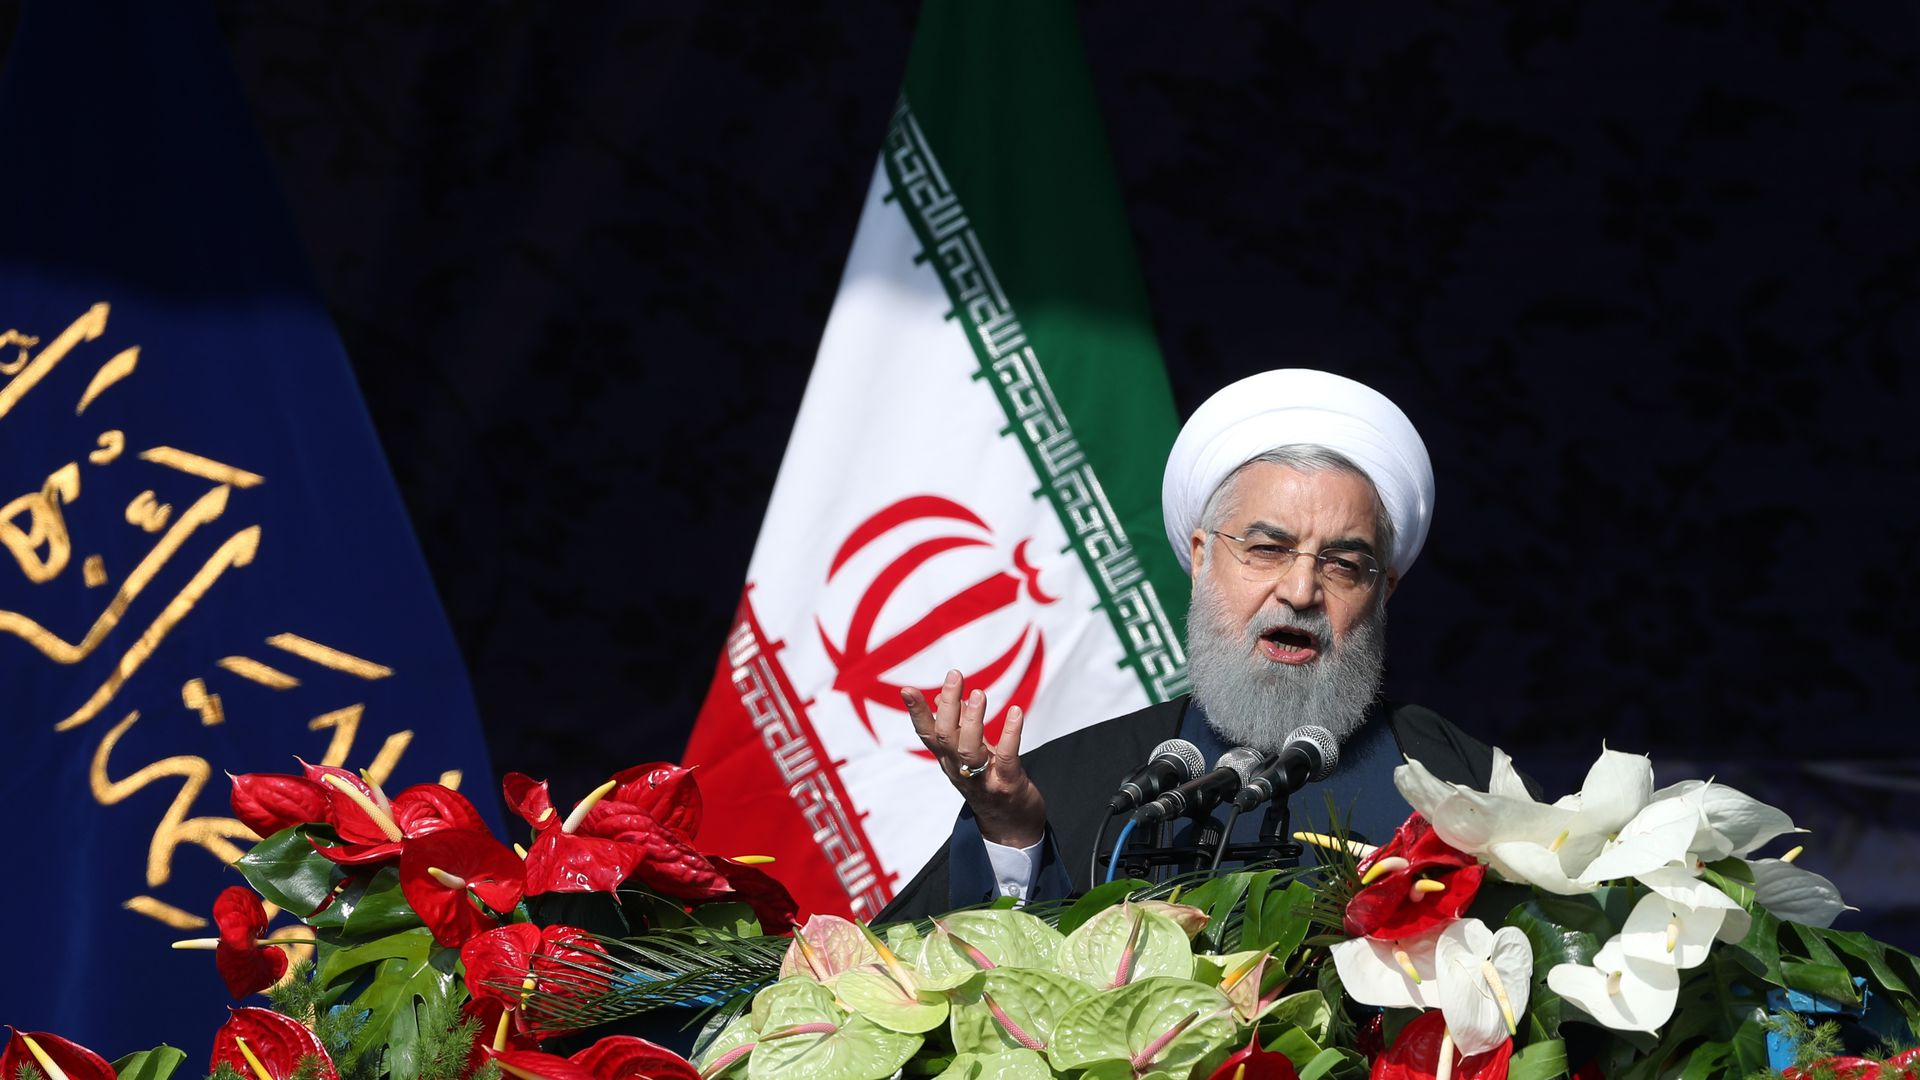 Iranian President Hassan Rouhani delivers a speech during a ceremony to mark the 39th anniversary of the Islamic revolution on February 11, 2018